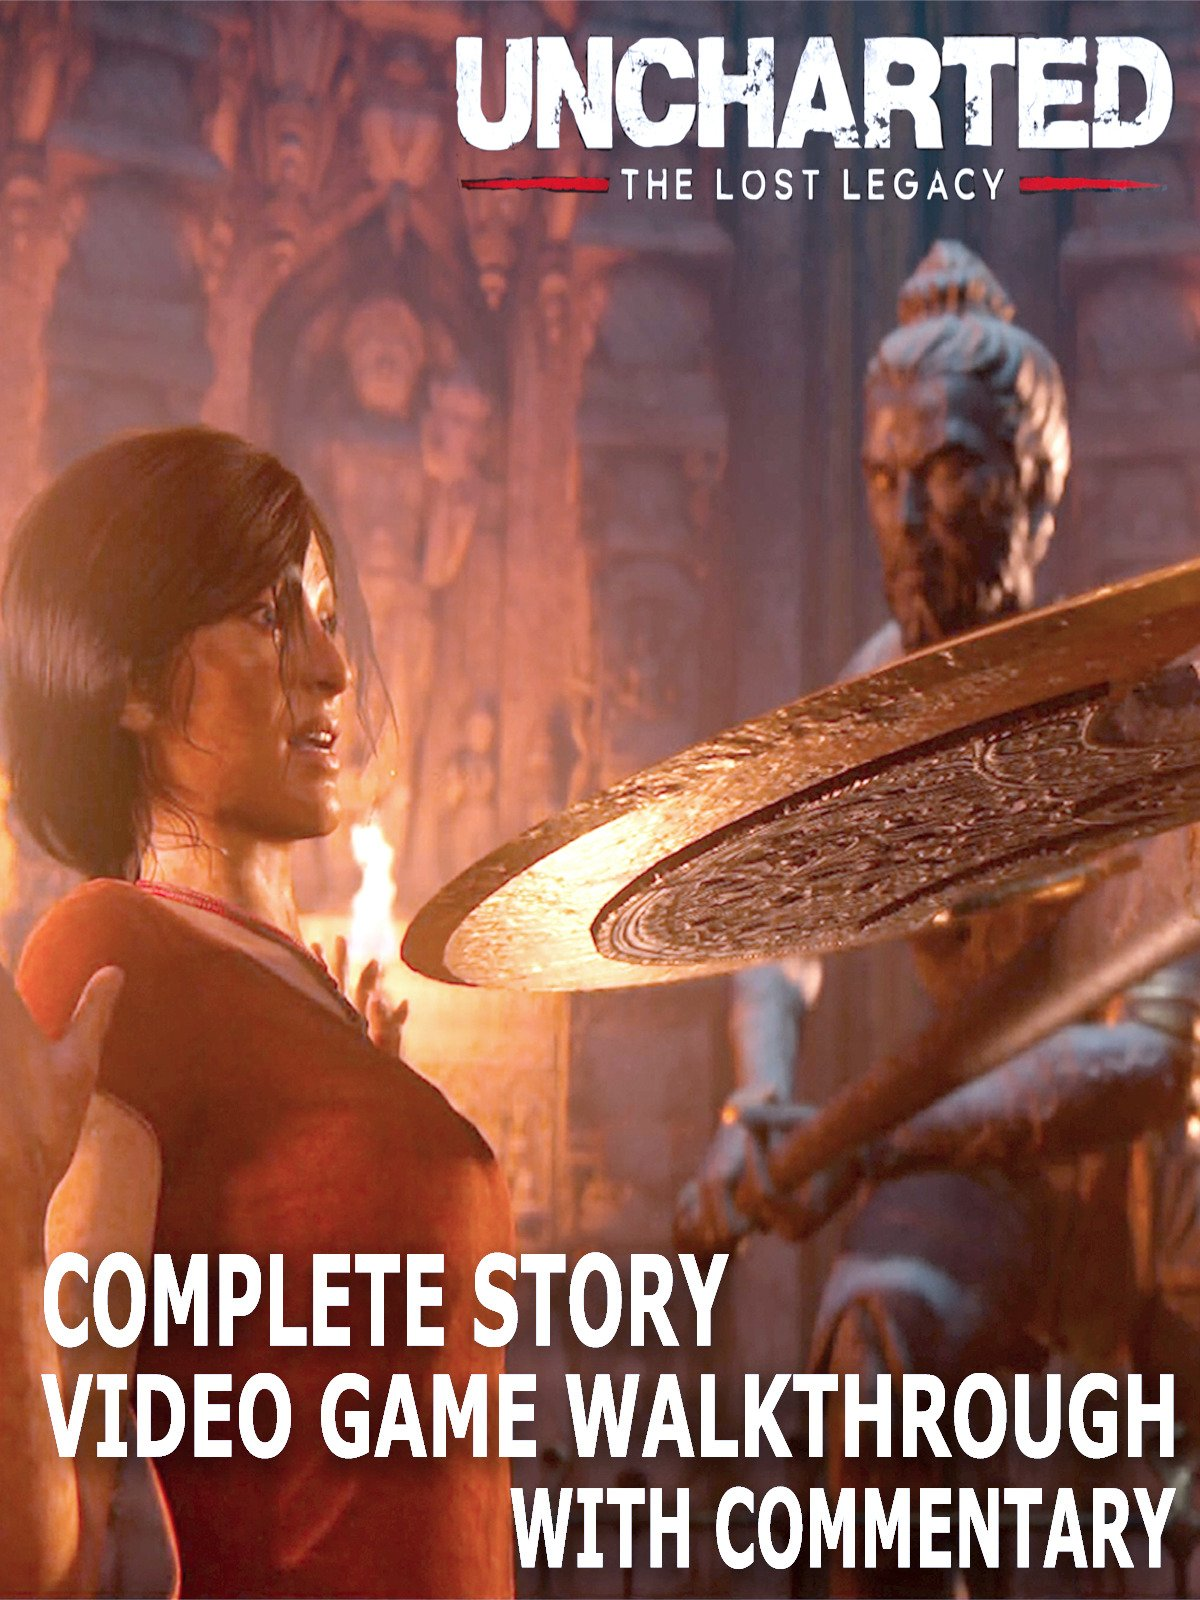 Clip: Uncharted The Lost Legacy Complete Story Video Game Walkthrough with Commentary